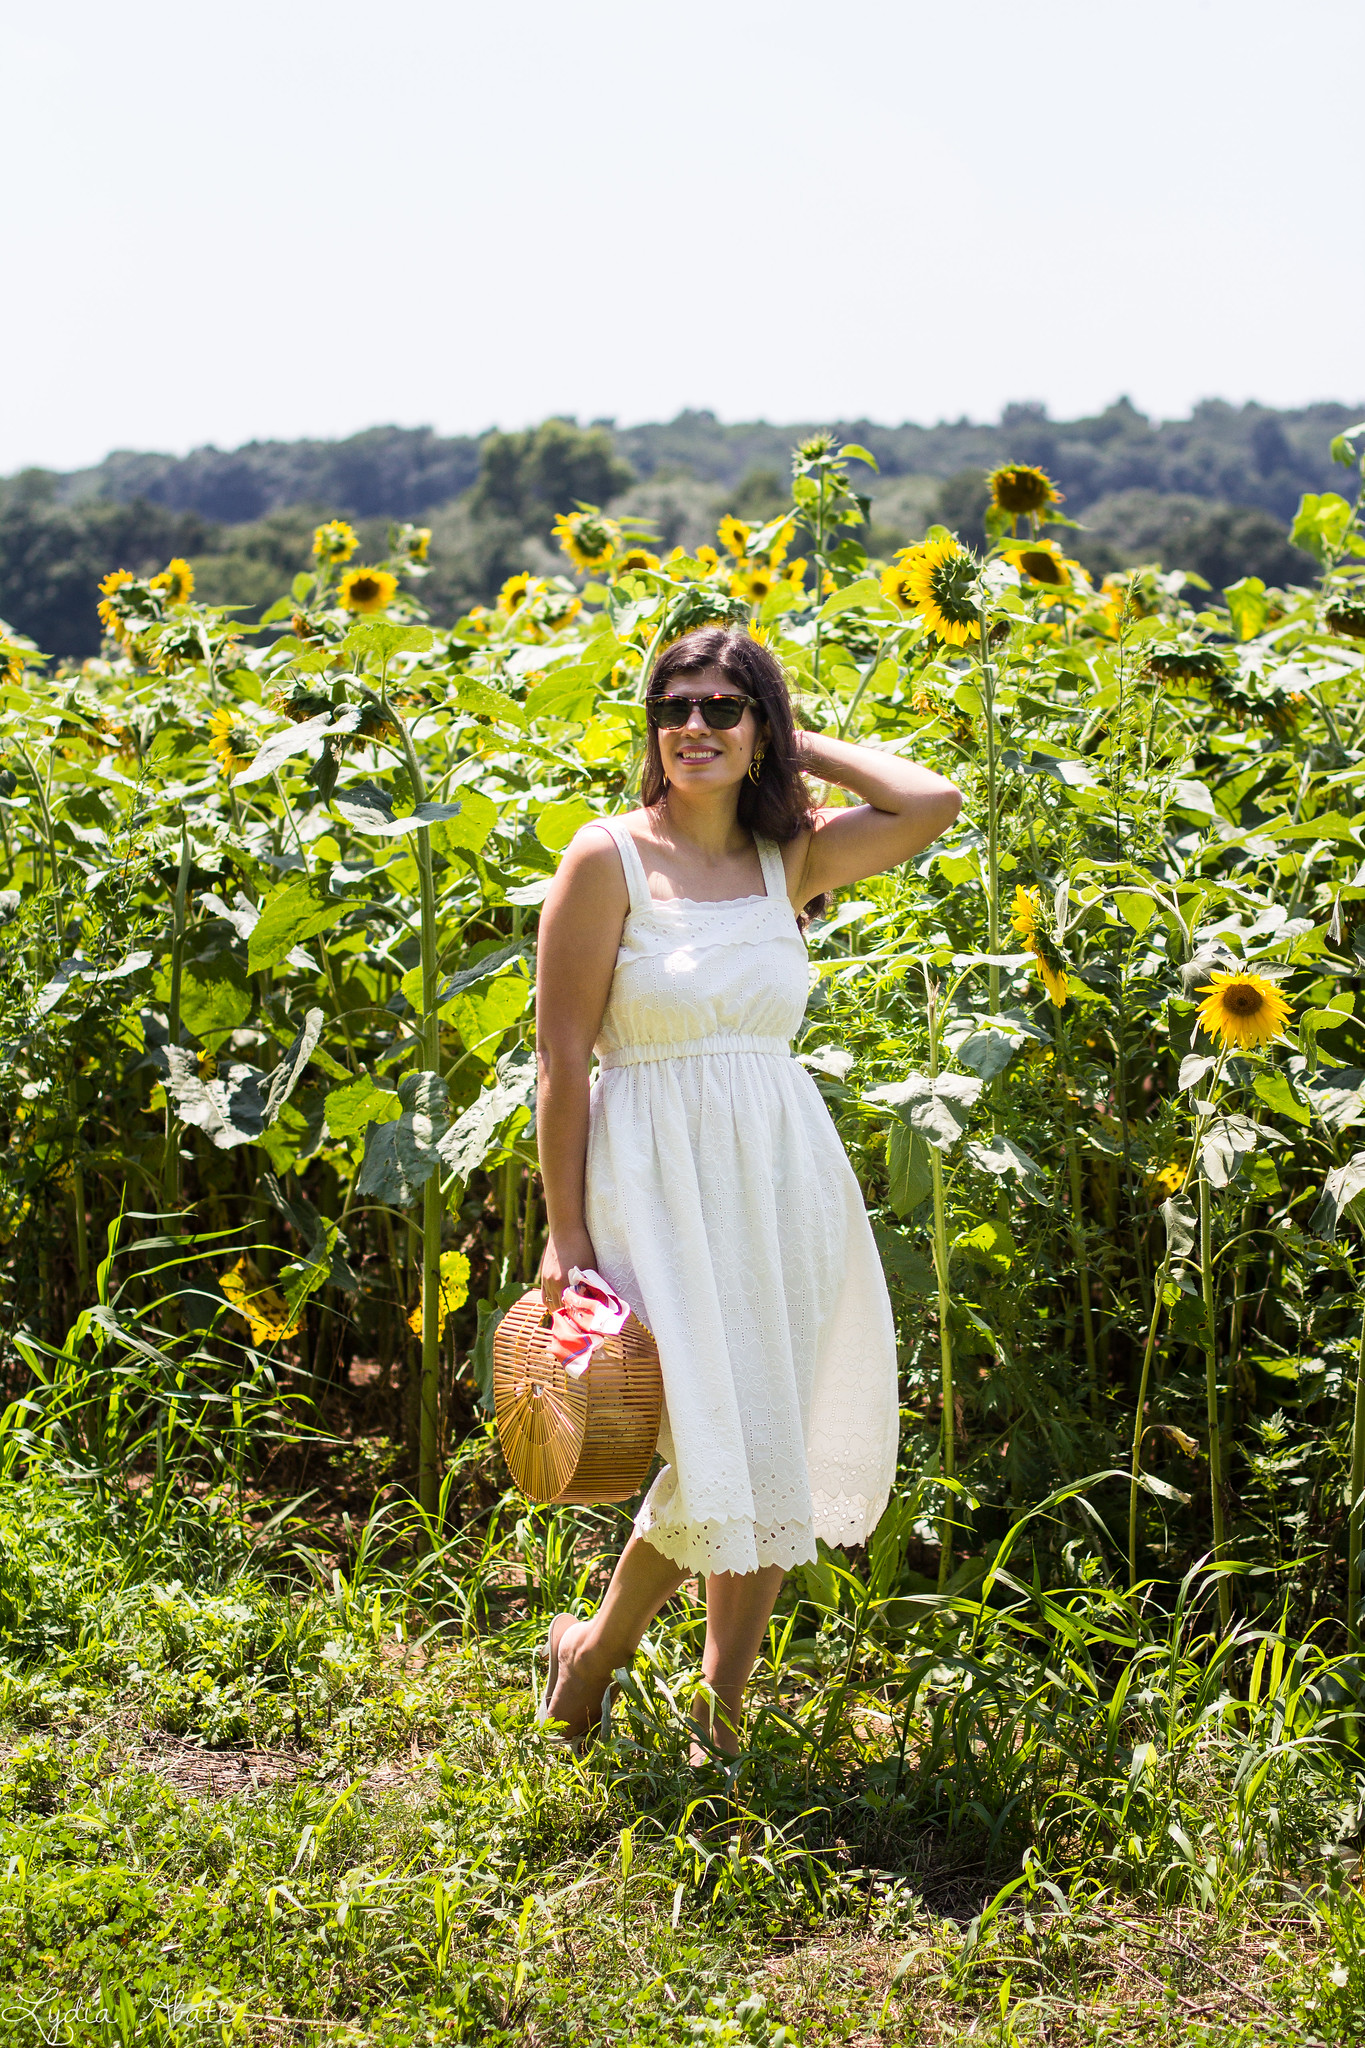 18e991bd4aa2d August 2018 - Chic on the Cheap | Connecticut based style blogger on ...